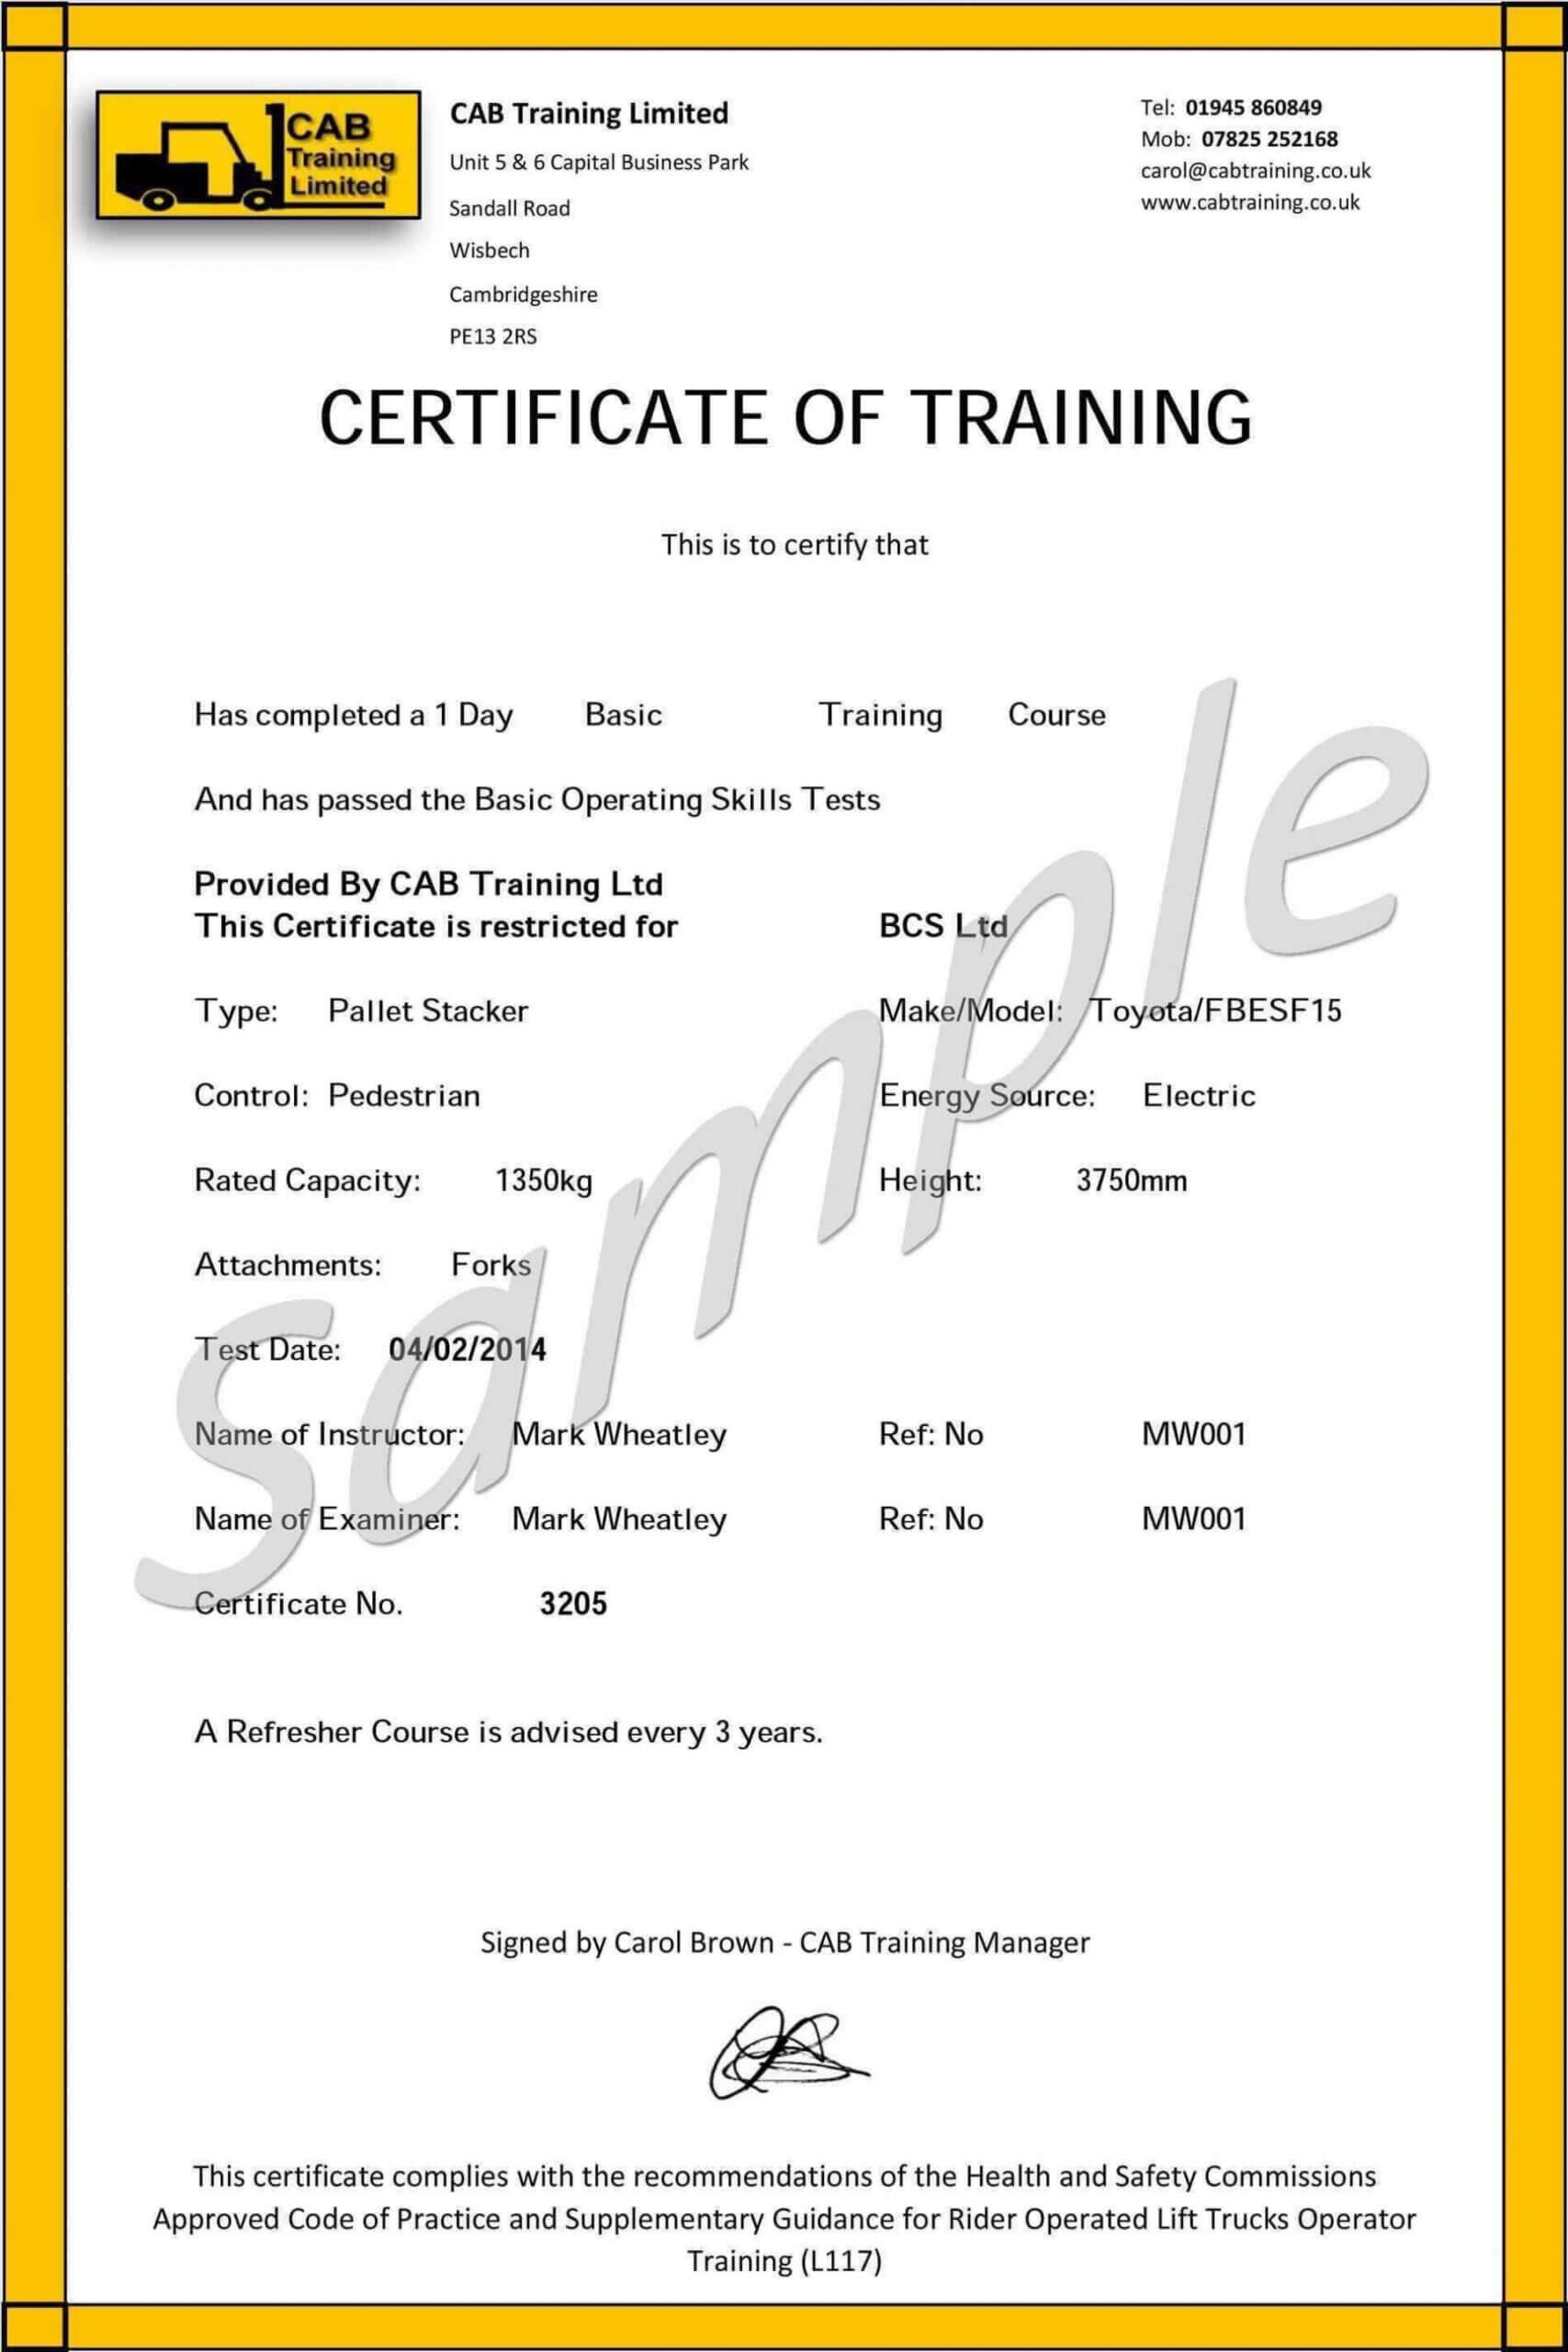 009 Forklift Certification Card Template Free Original In Forklift Certification Card Template